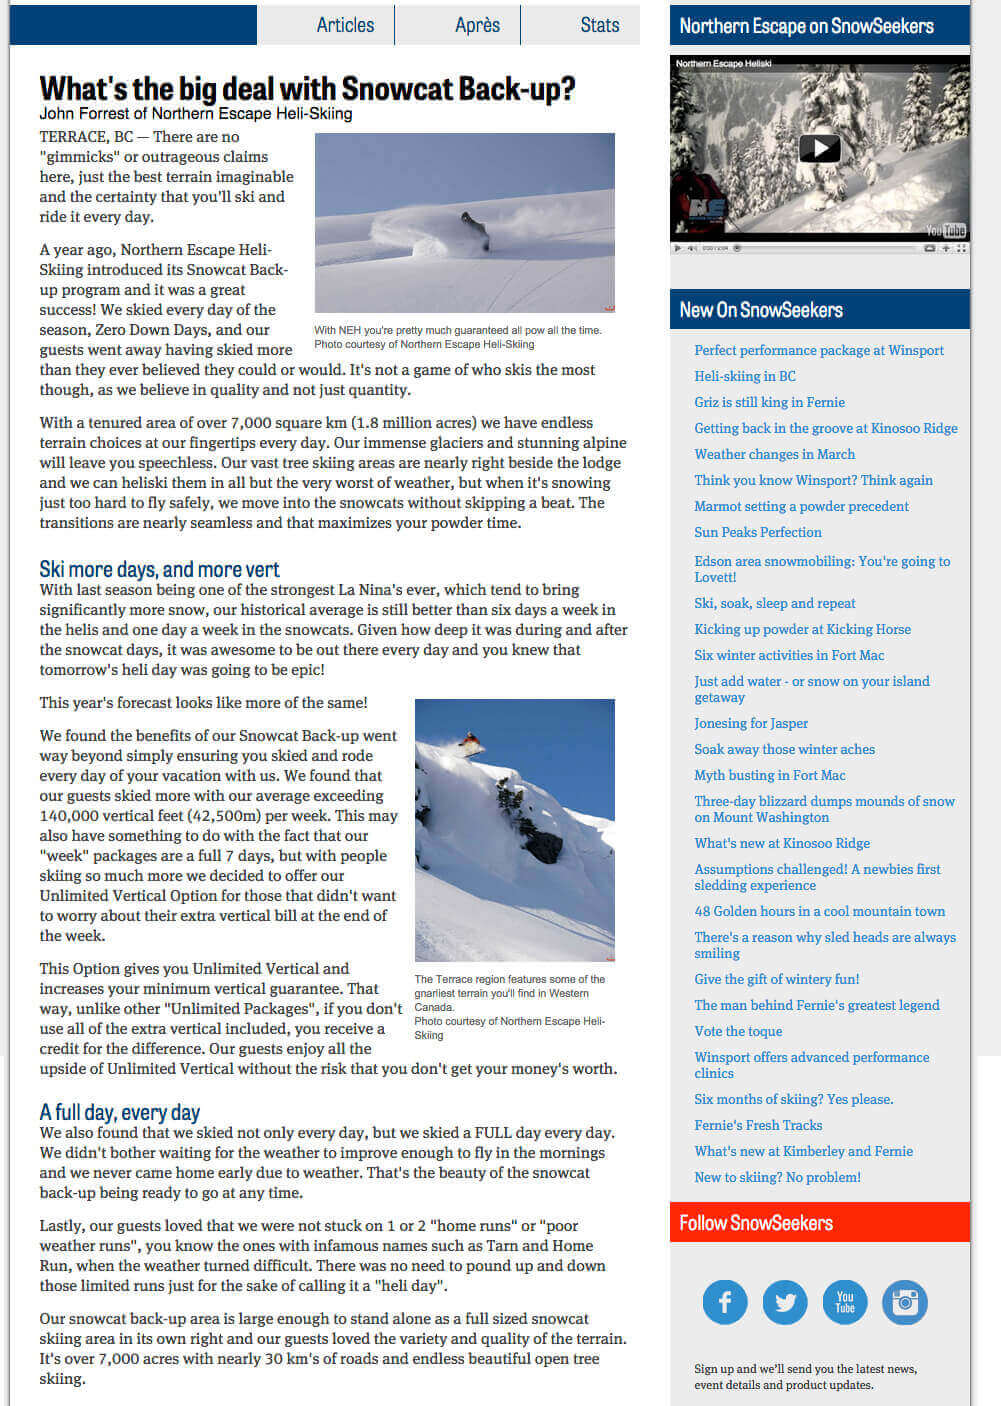 2013 Snowseekers-Snowcat Back-up article